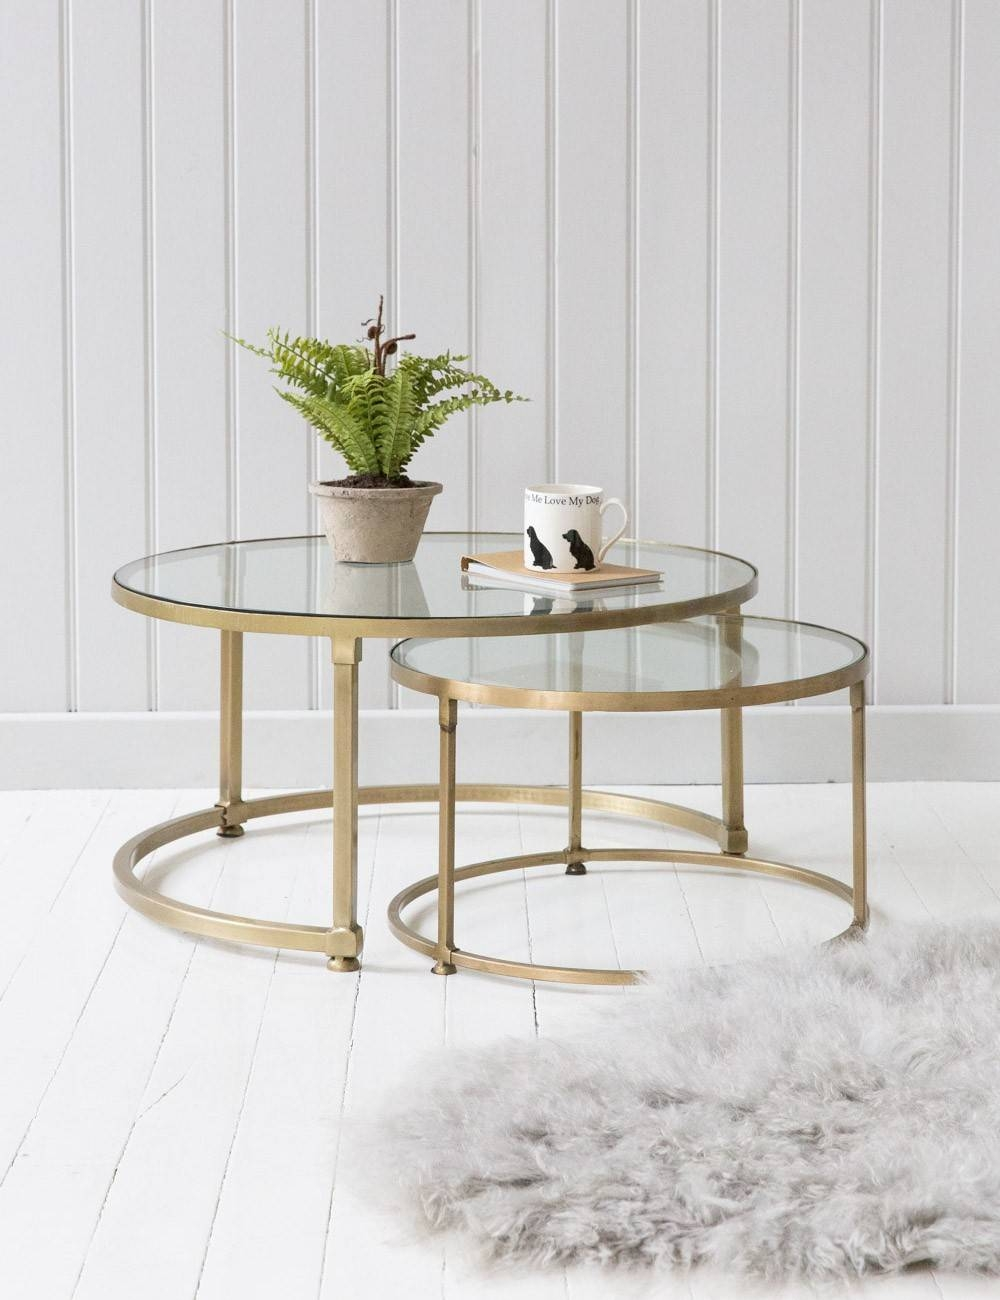 Coffee Table: Enchanting Round Glass Coffee Tables For Sale Round with regard to Circular Glass Coffee Tables (Image 6 of 30)